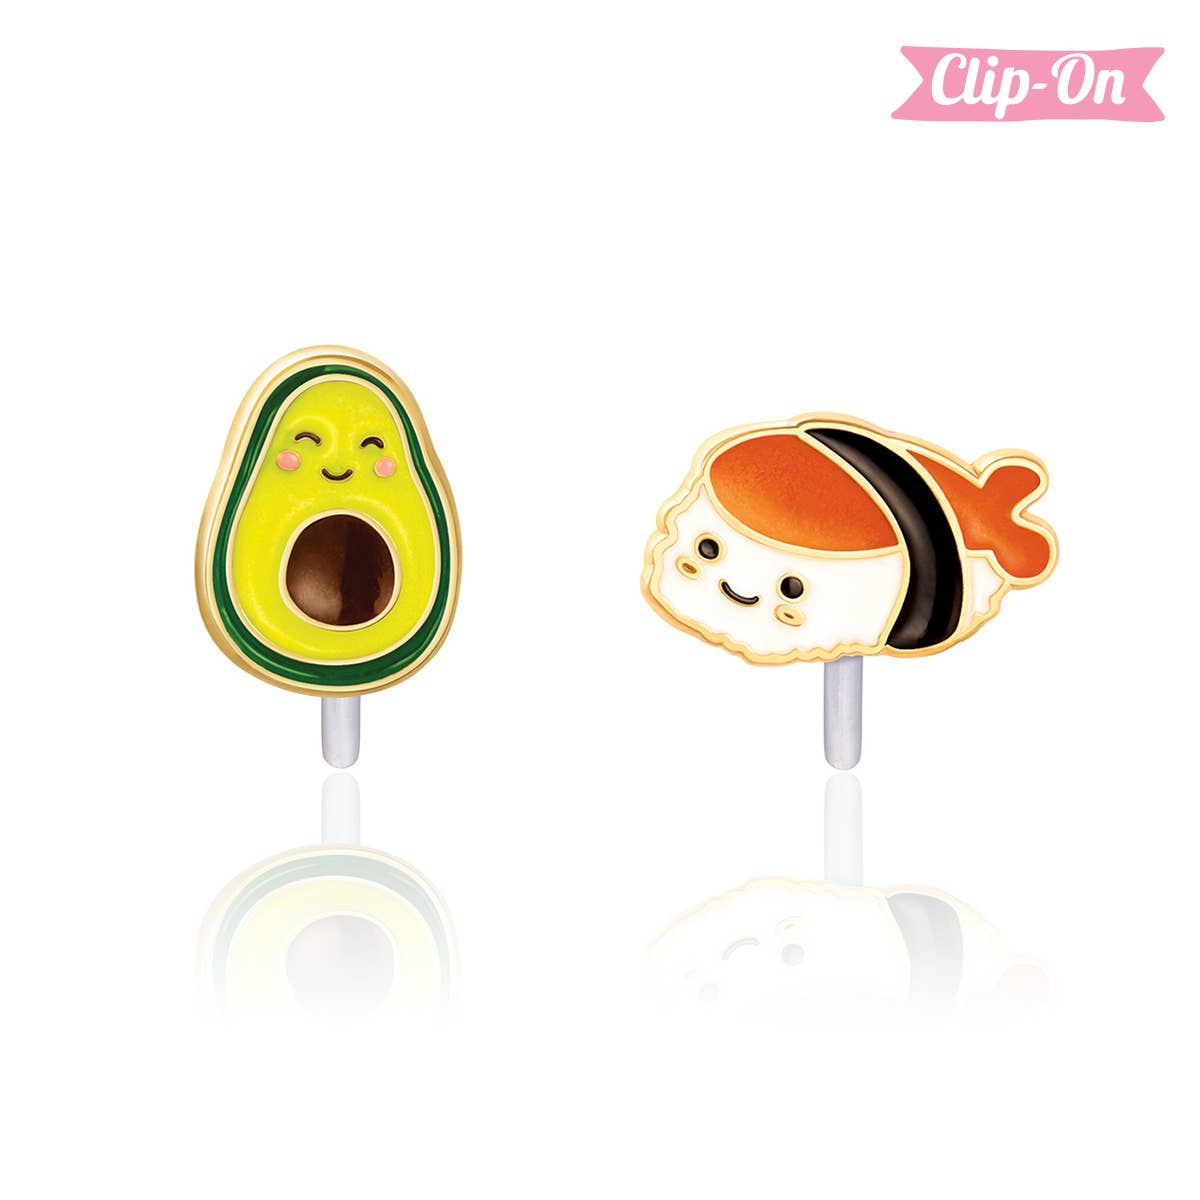 """""""The Perfect Pair""""- Guac and Roll Clip-On Earrings 